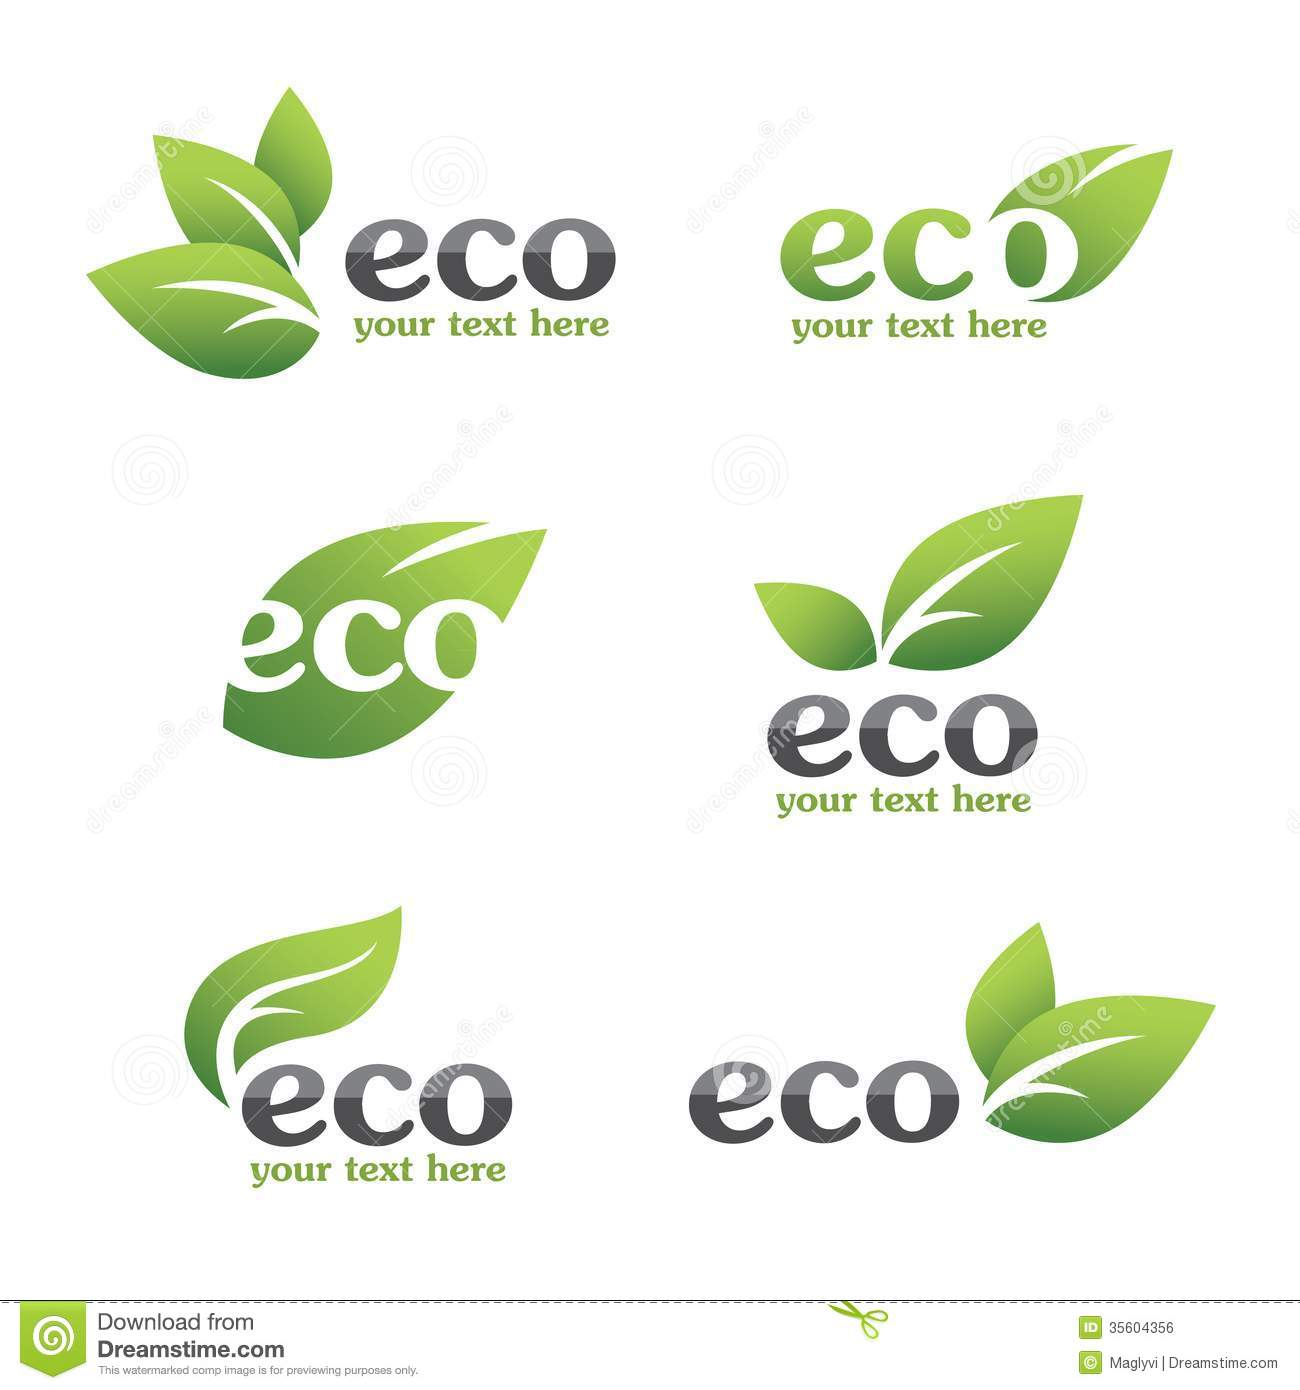 Eco Icons Royalty Free Stock Image - Image: 35604356